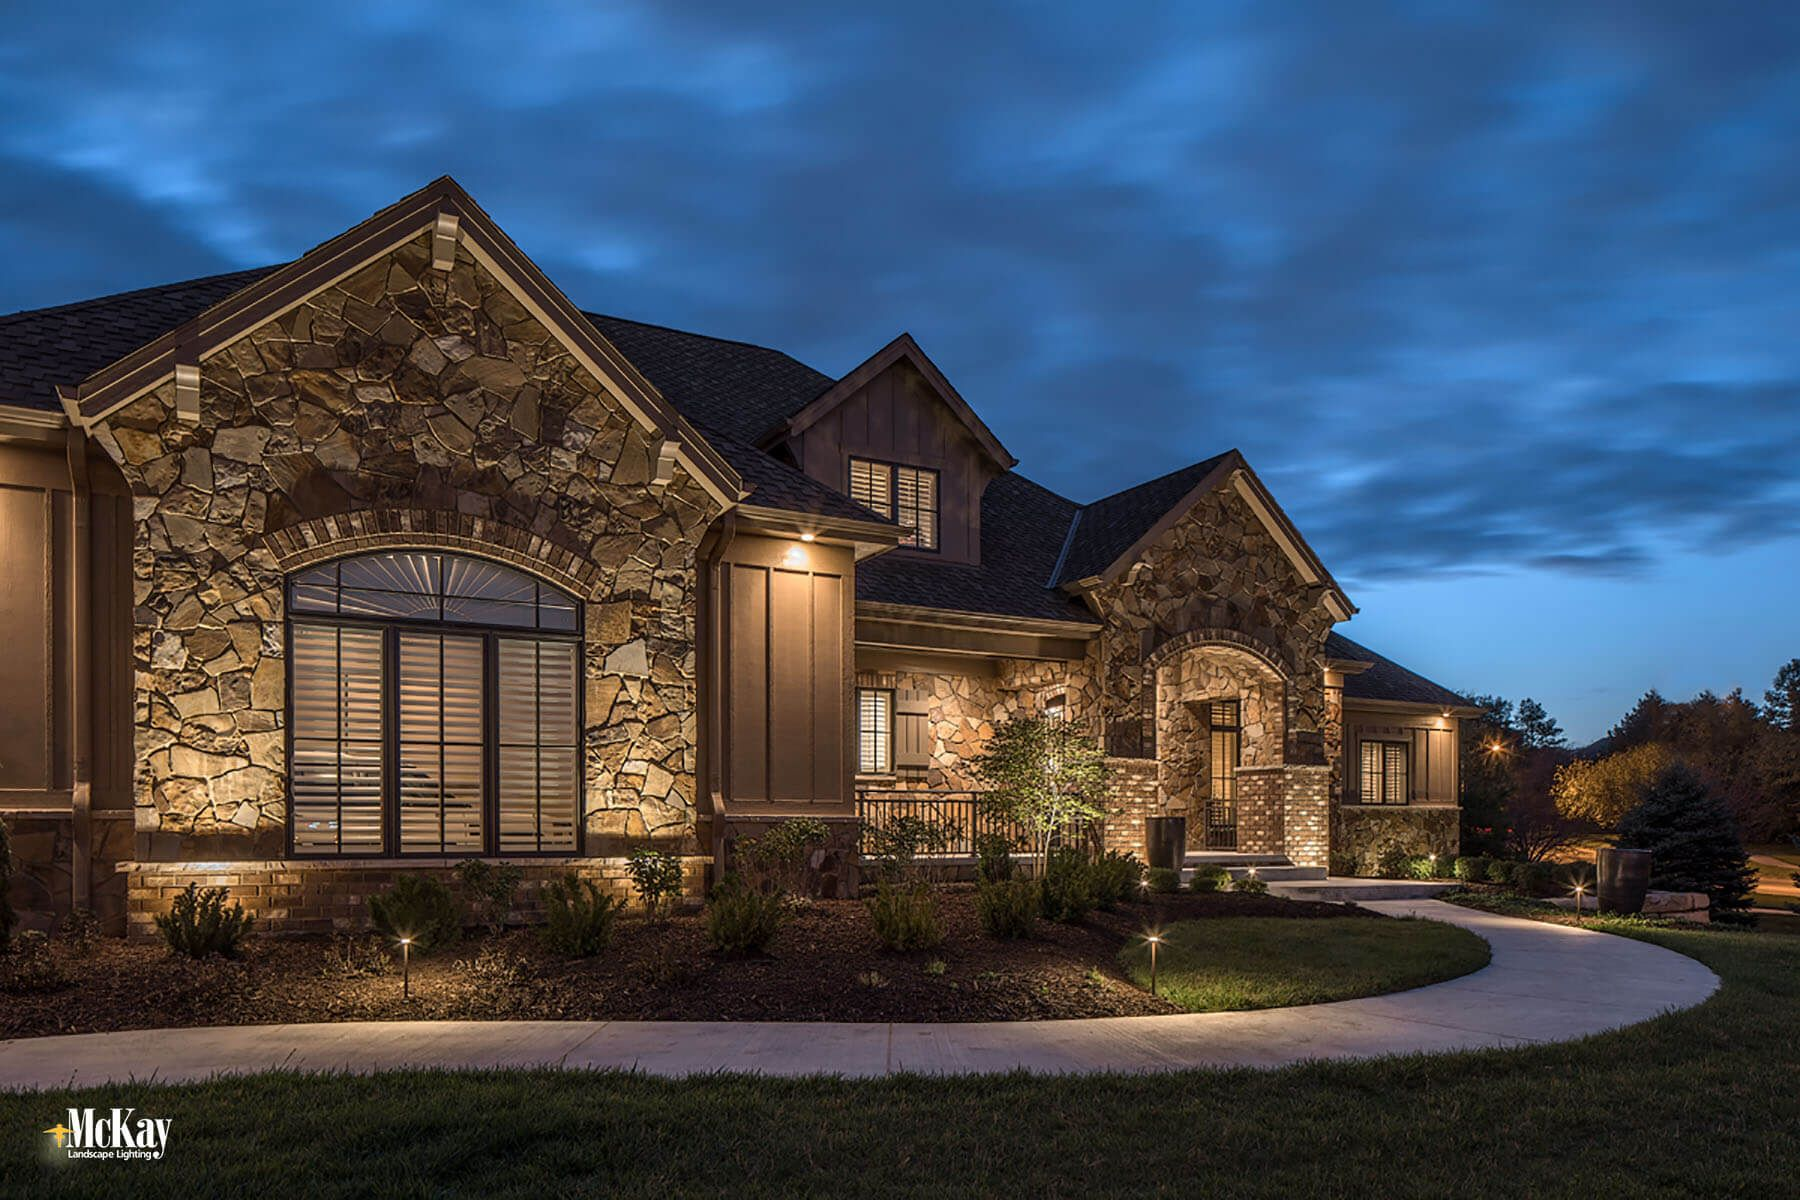 Project spotlight elegant outdoor security lighting design residential security lighting omaha nebraska learn more about this outdoor security lighting design by mckay mozeypictures Images